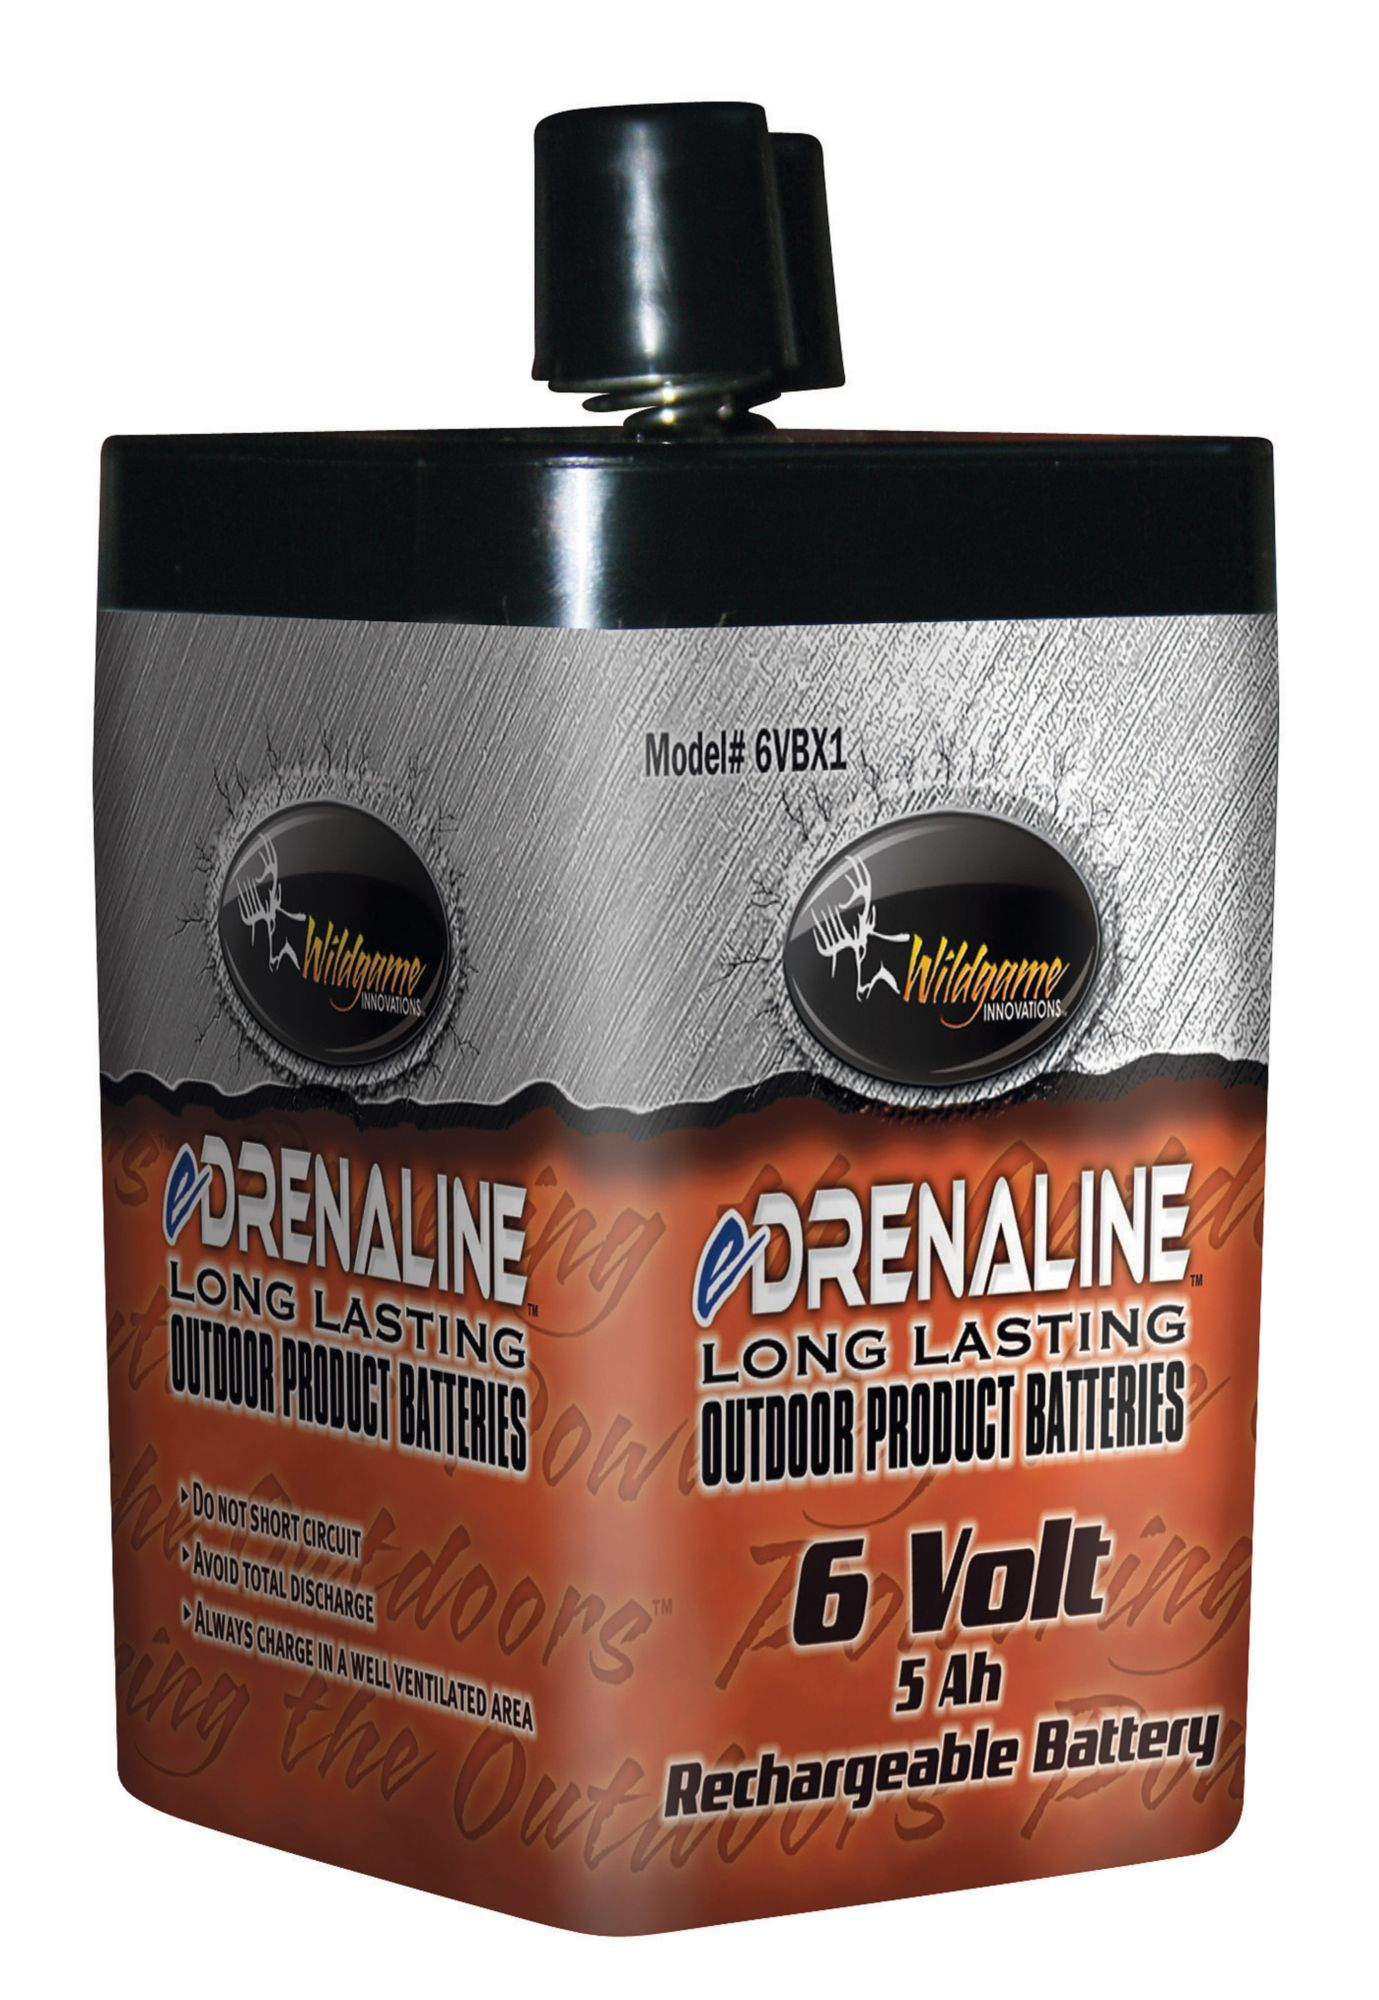 Wildgame Innovations Edrenaline Long Lasting Sealed Lead Acid 6v Sealedleadacid Battery Charger Circuits Noimagefound